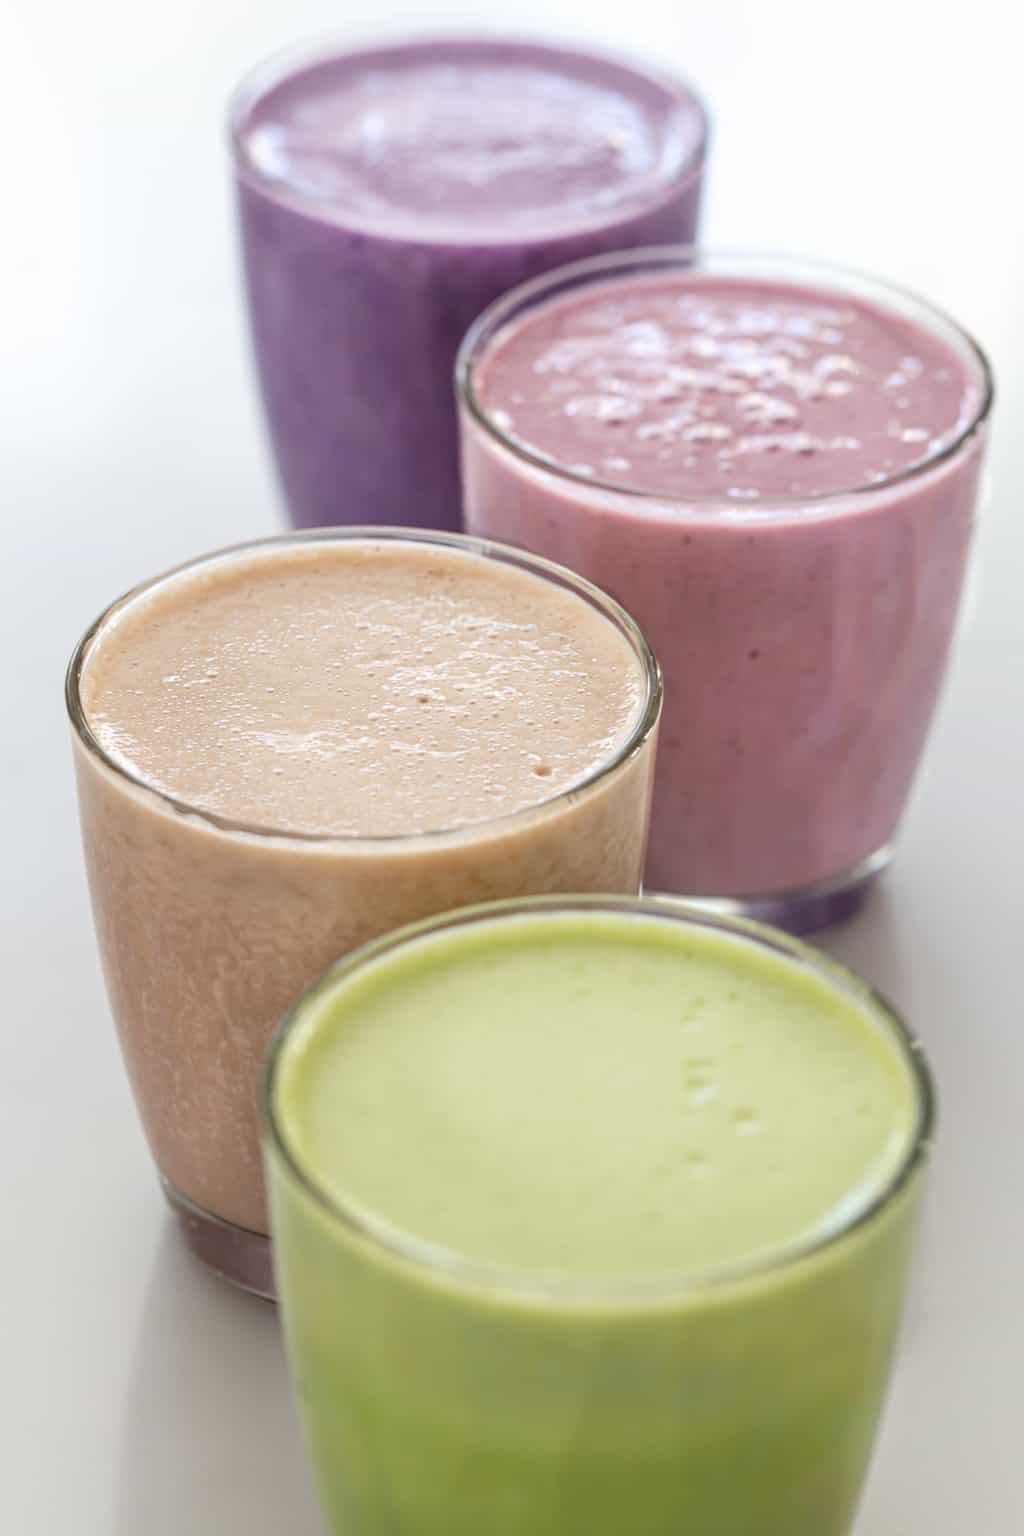 Four glasses filled with colorful smoothies.